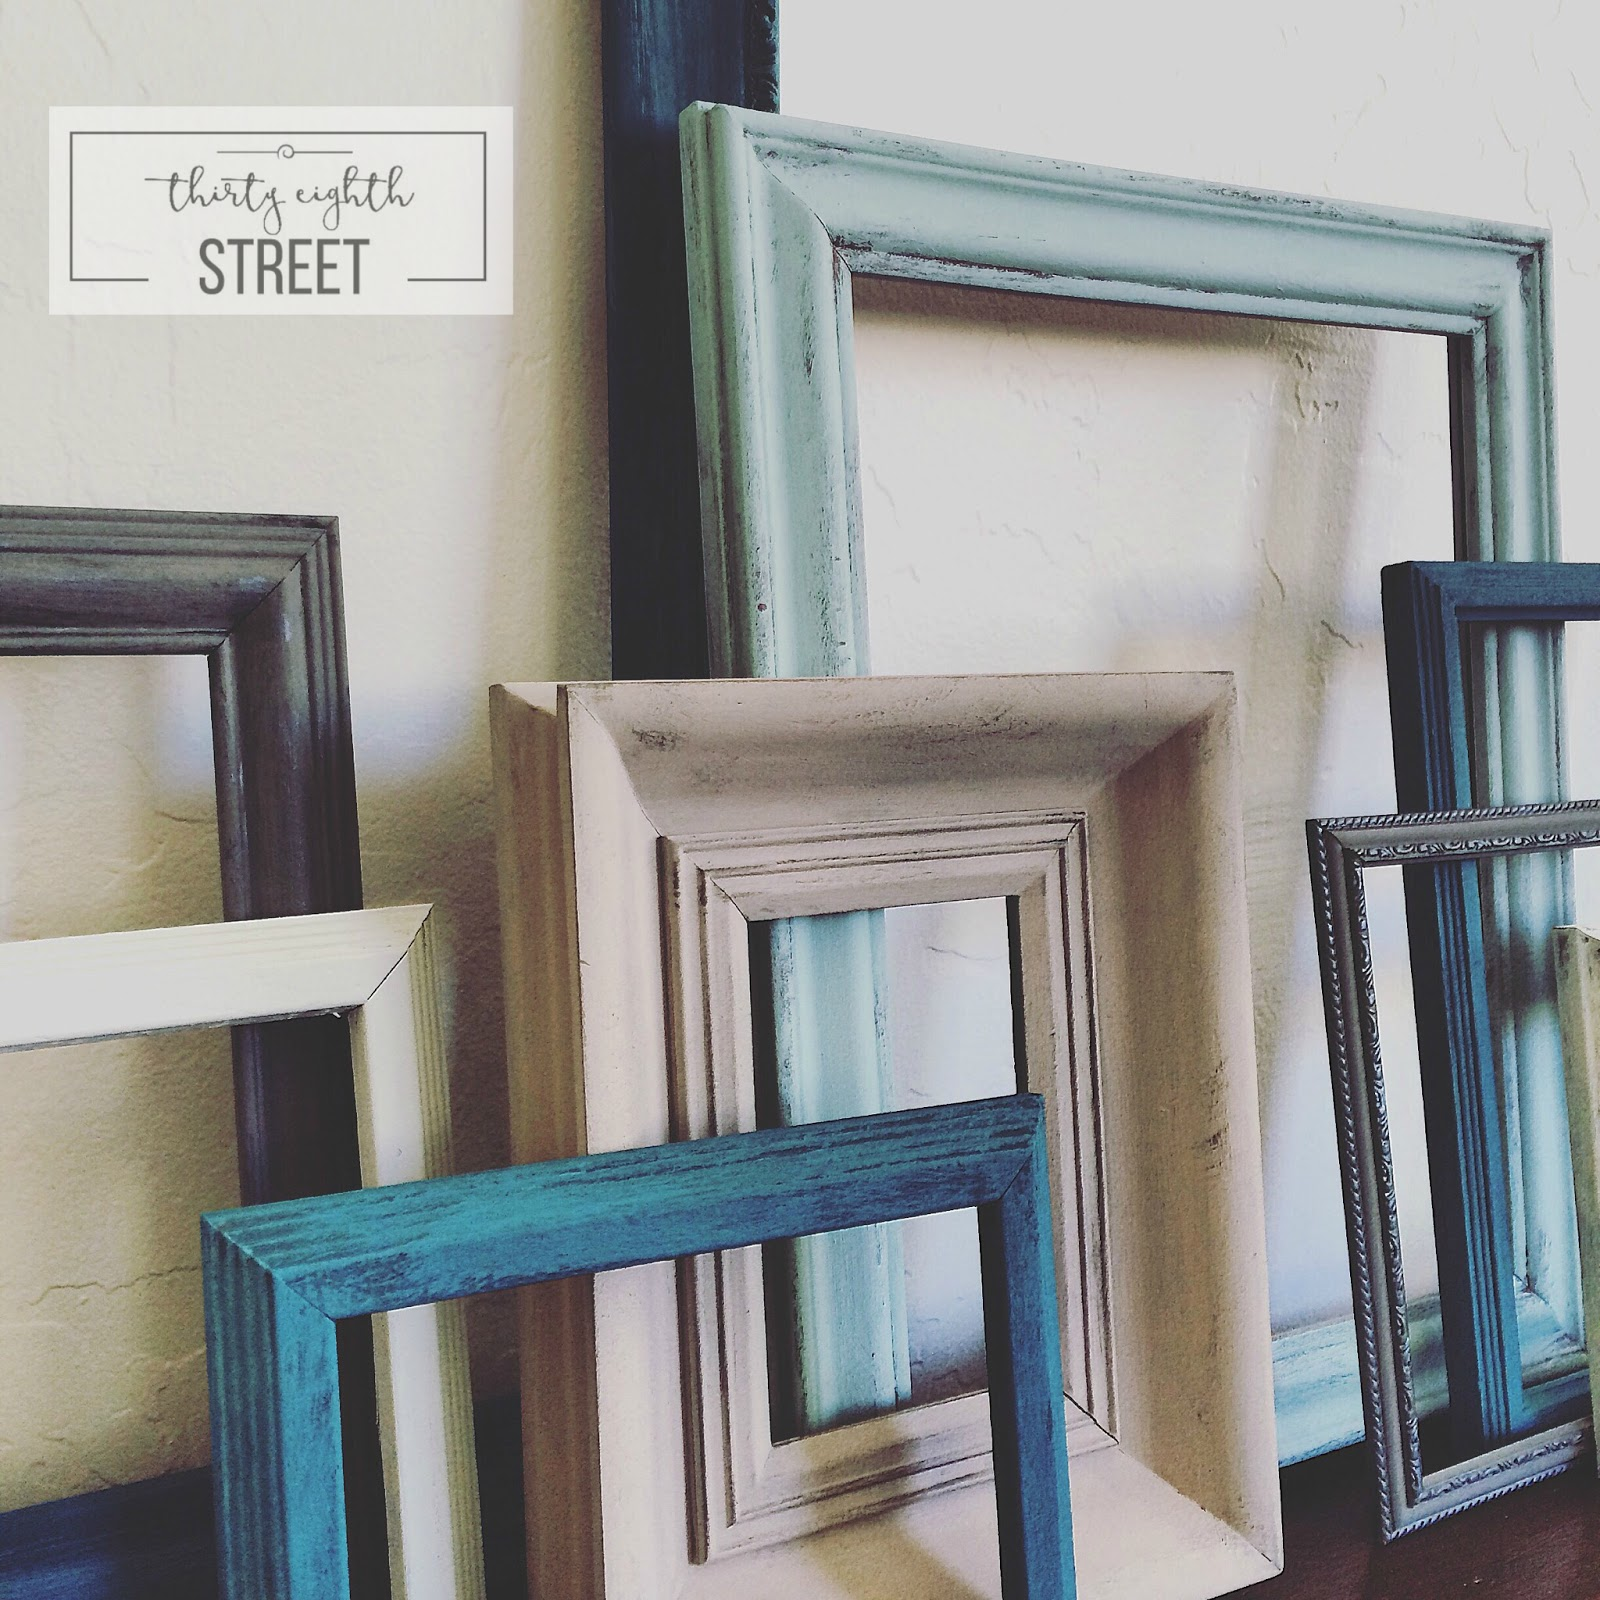 Gallery Wall Planner diy painted picture frames - thirty eighth street